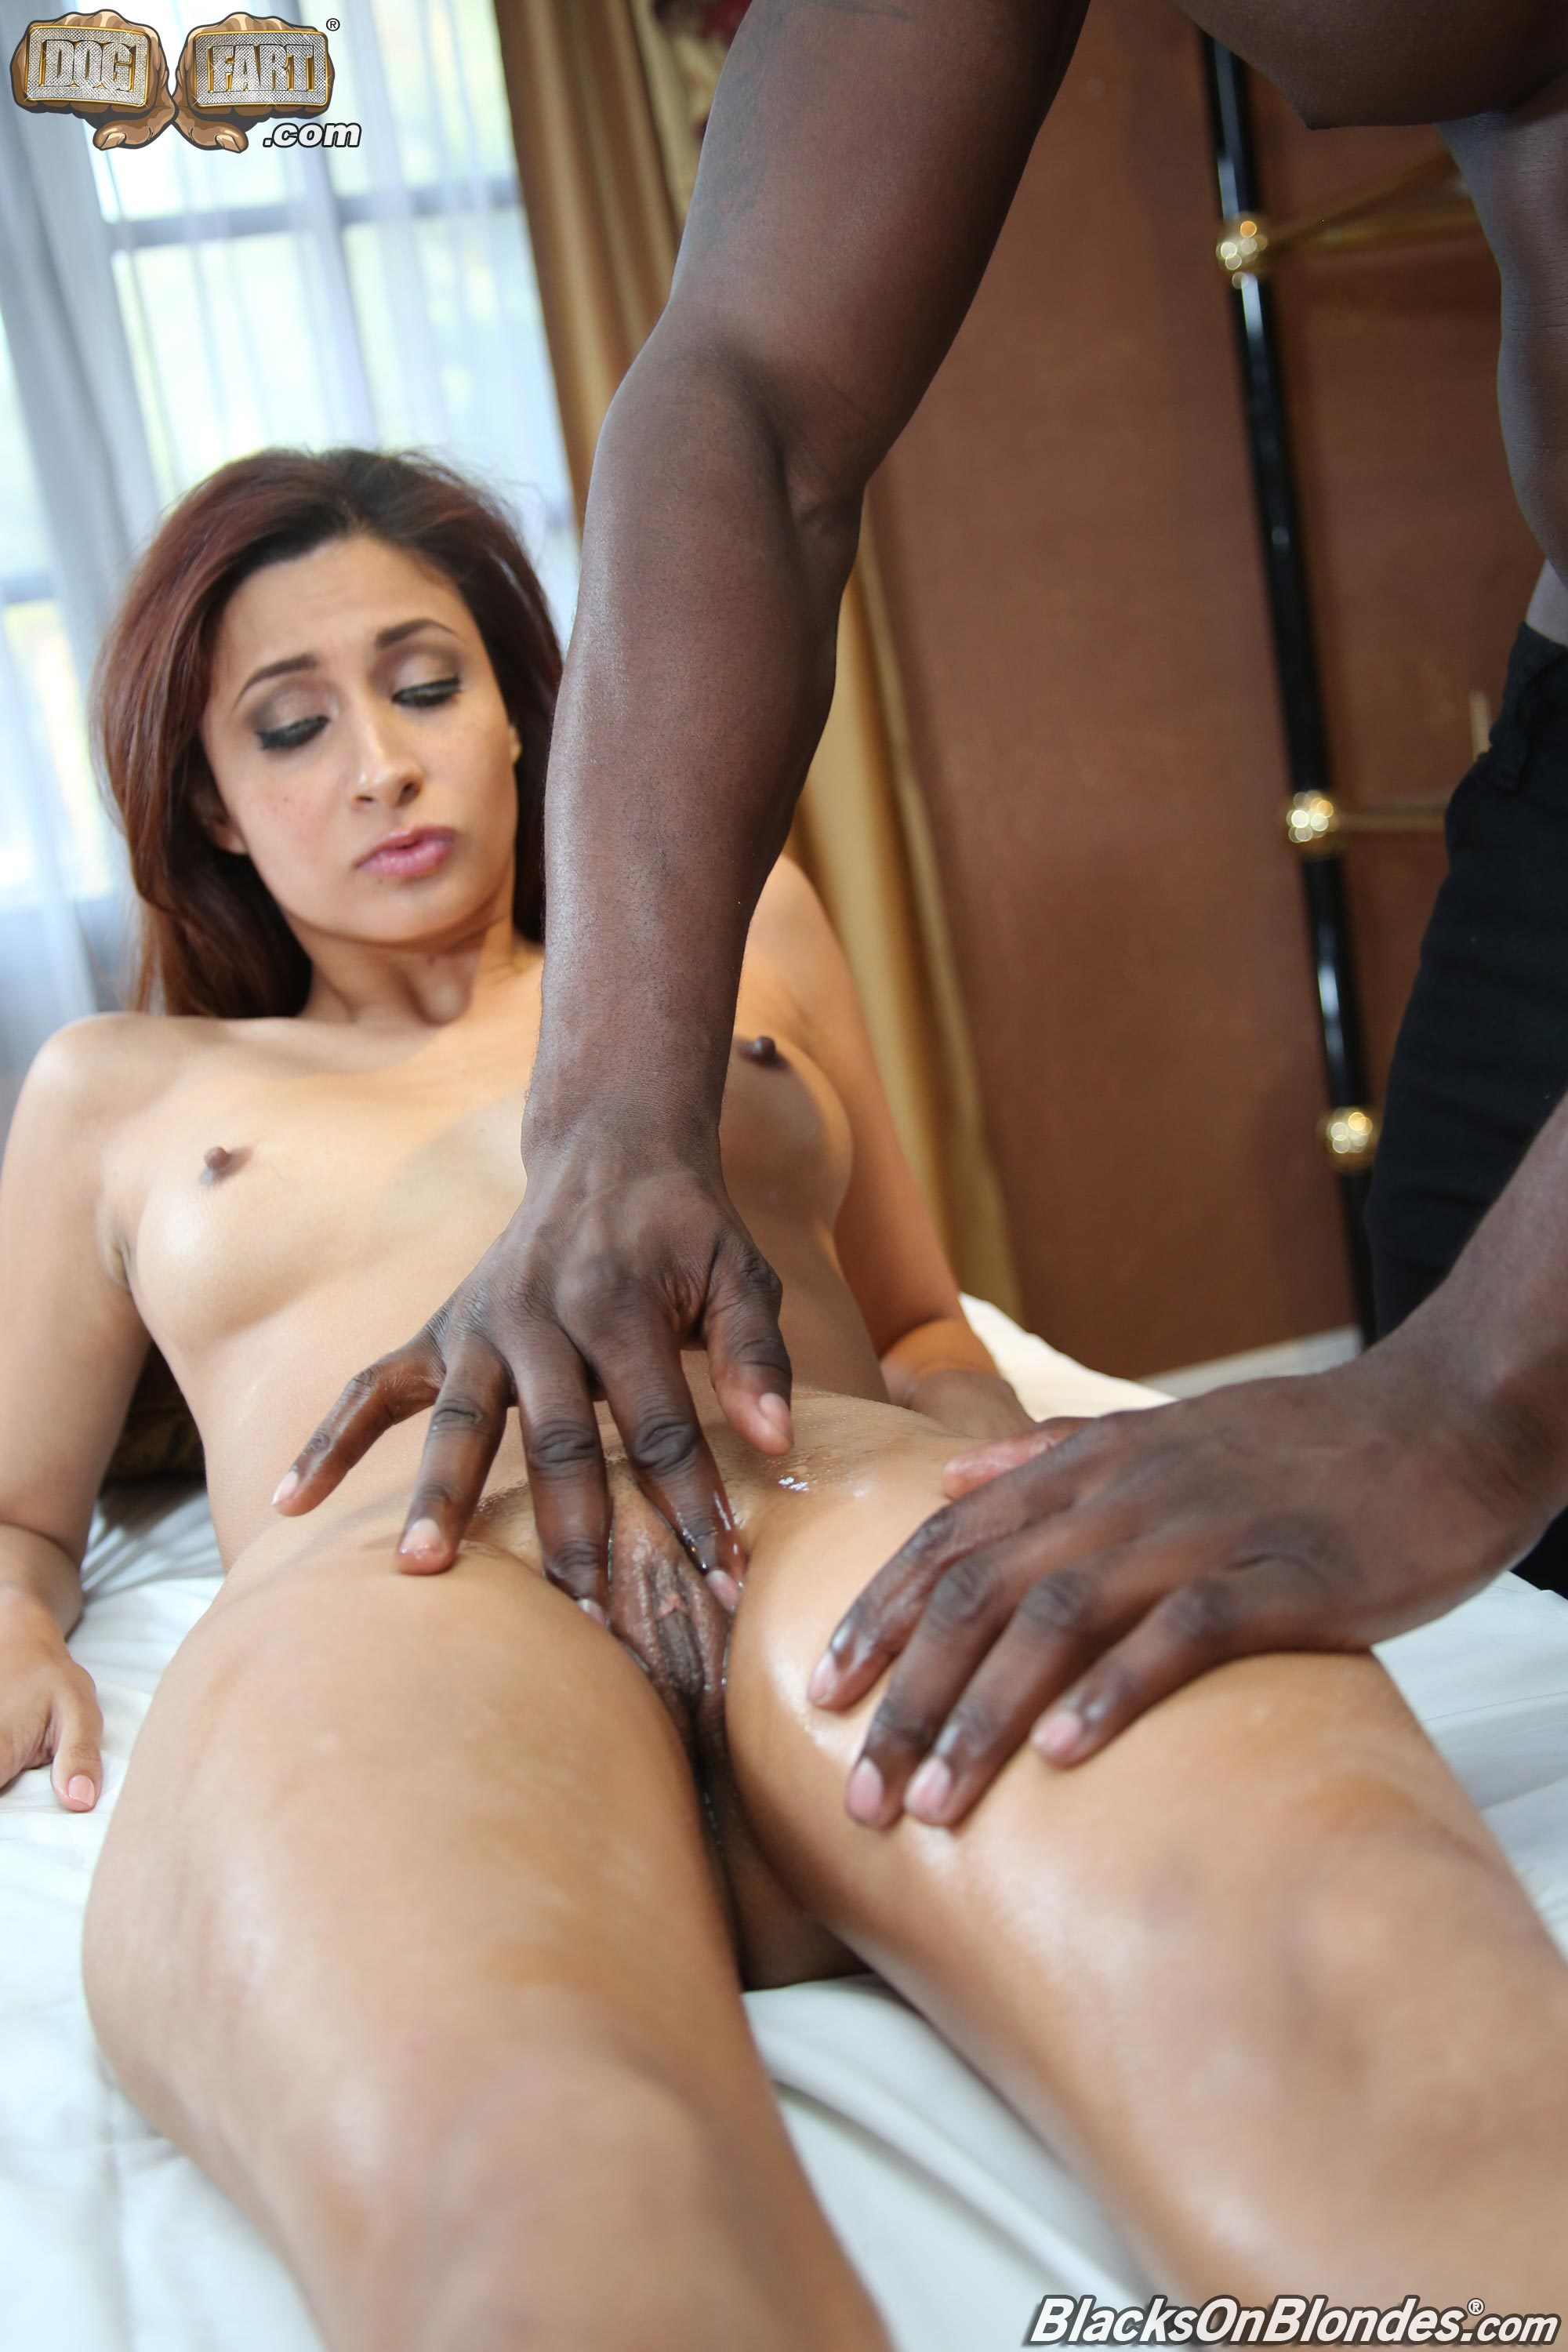 Jade Jantzen Reflex With A Great Feet Massage 608110 Muscle Black Dude Puts Oil And Fucks The Heck Out This Slender Babe Anal